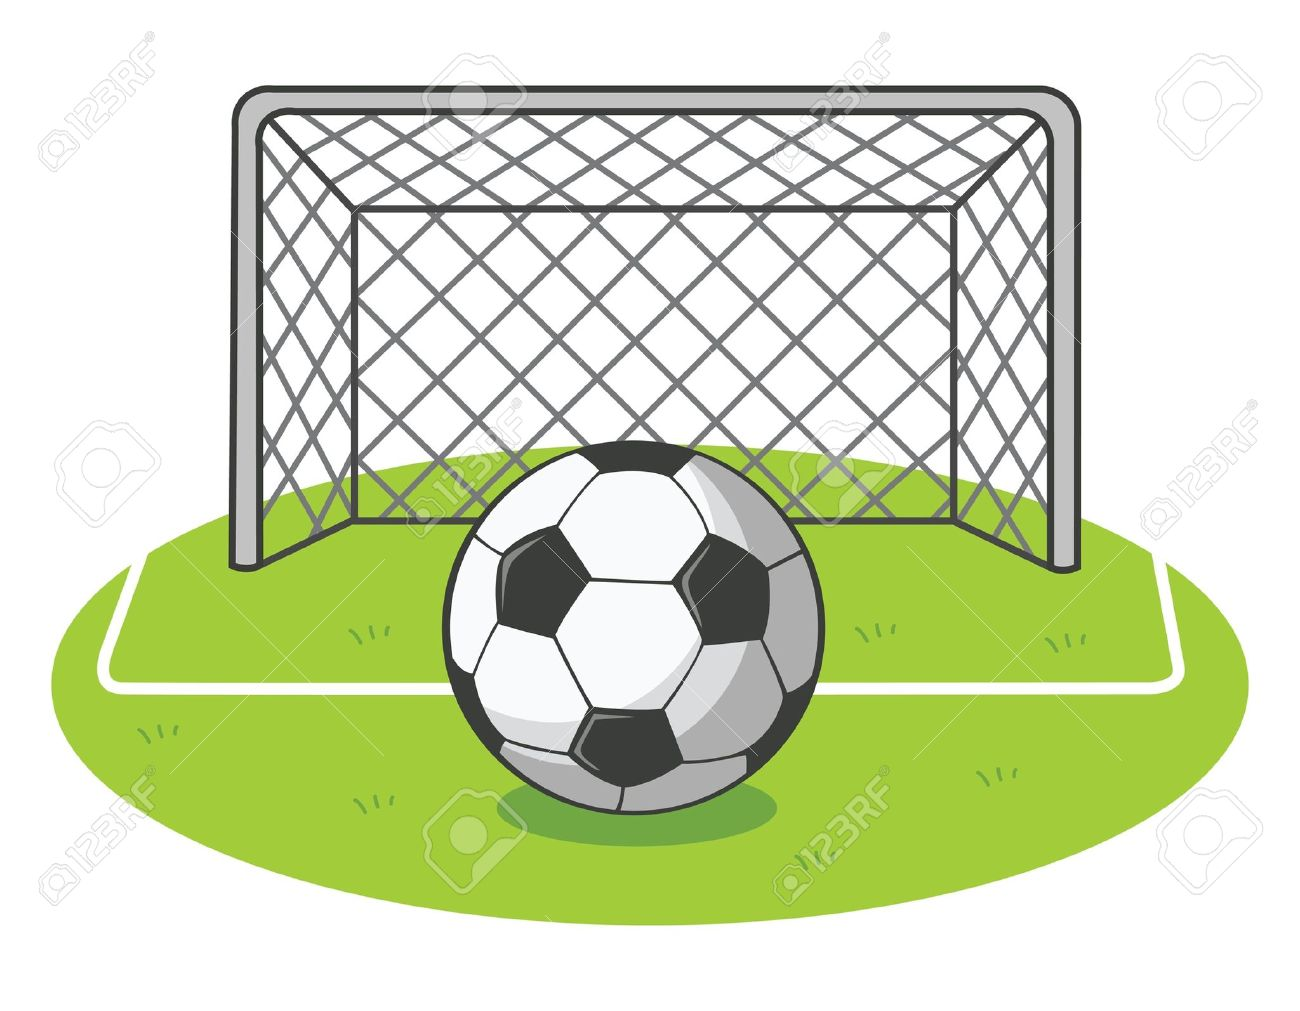 Field free download best. Goal clipart sport